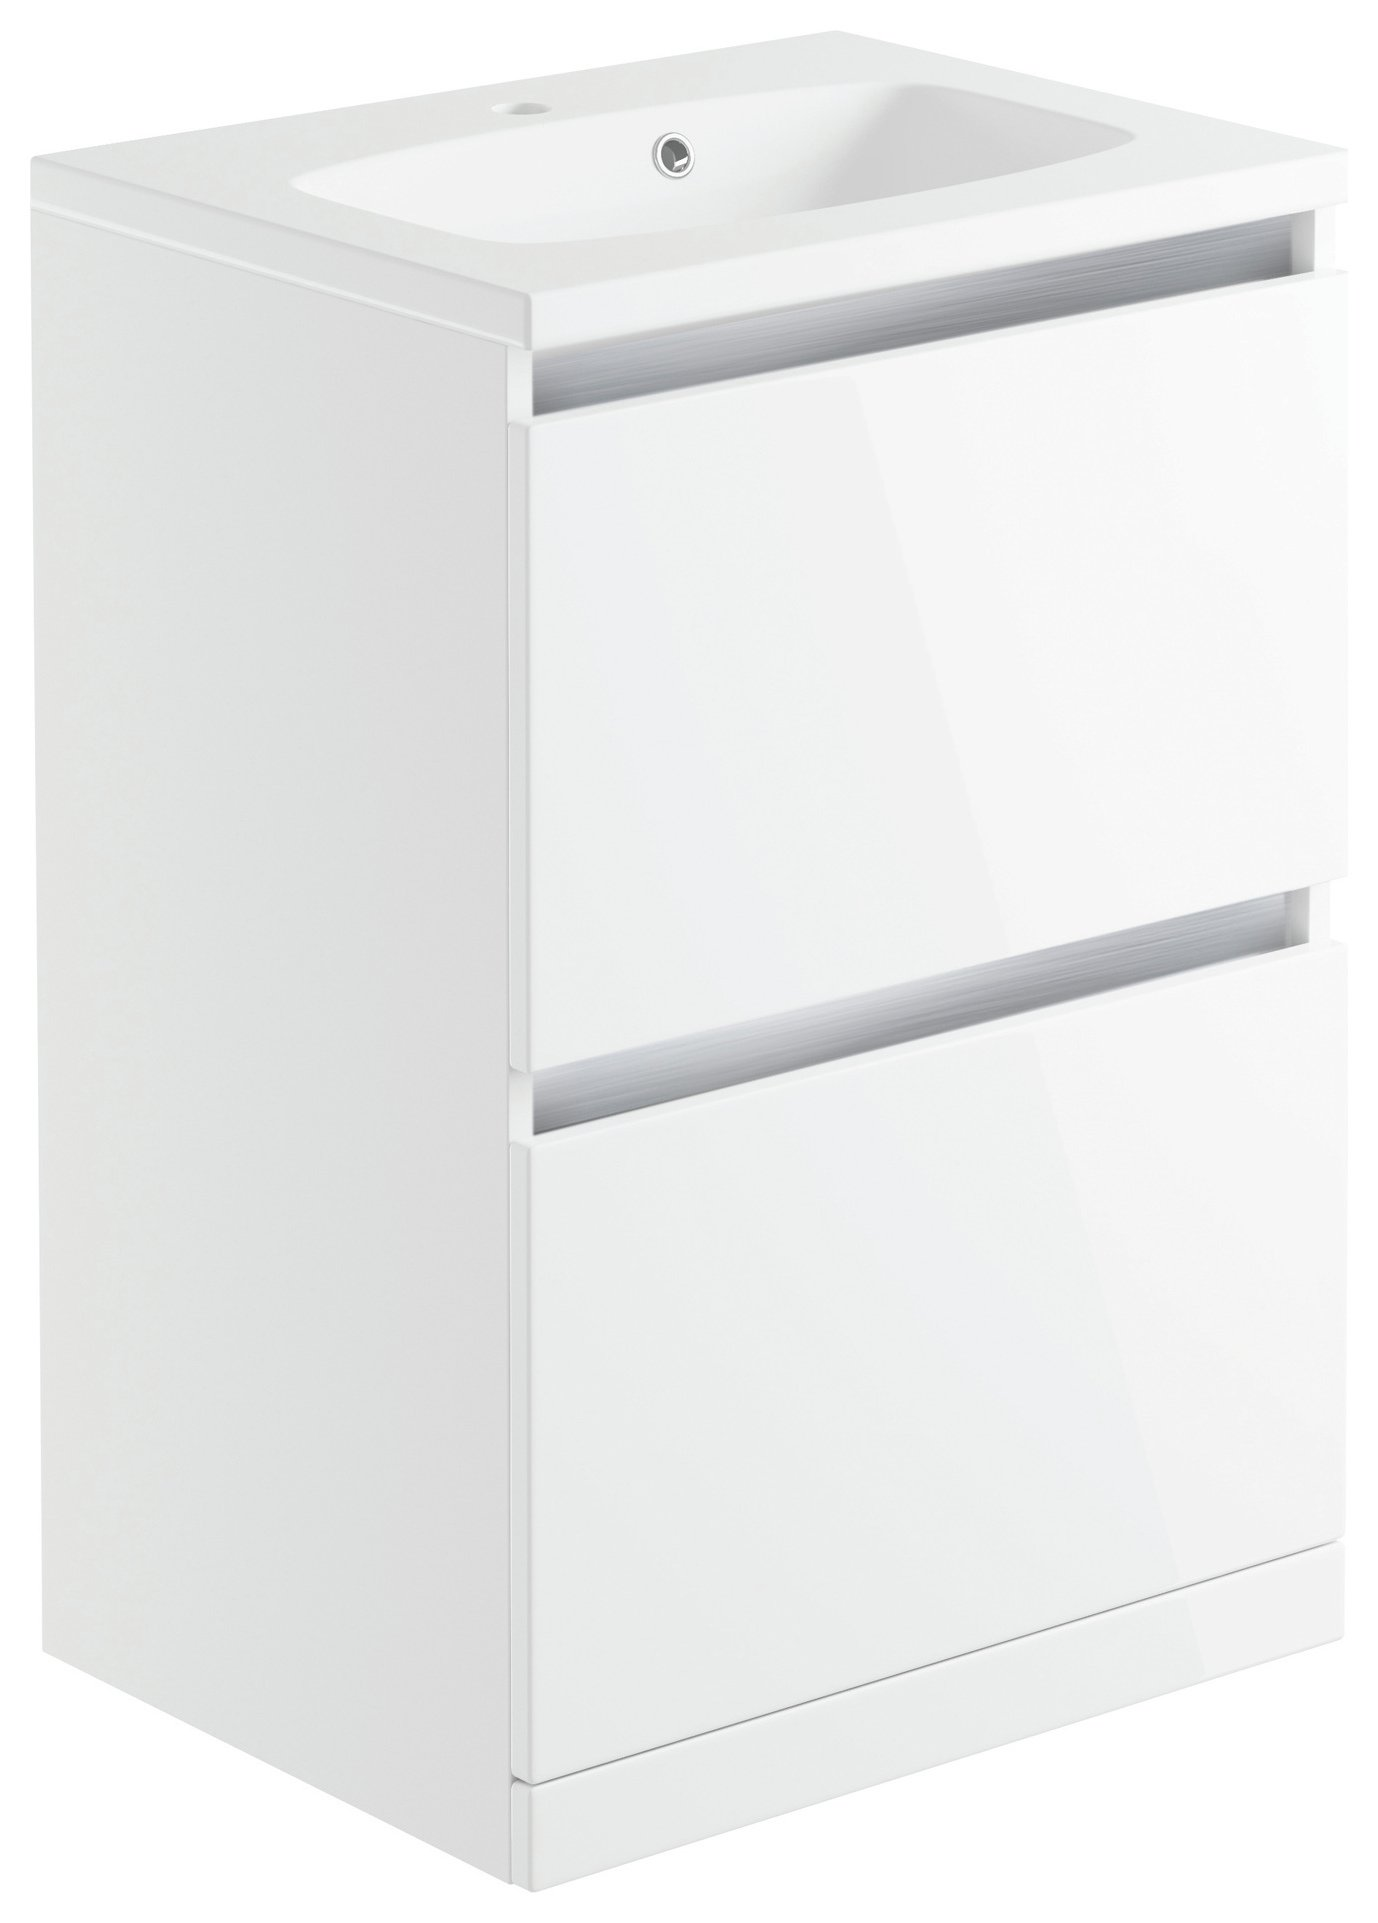 Lavari 2 Drawer Freestanding Vanity Basin - White Gloss